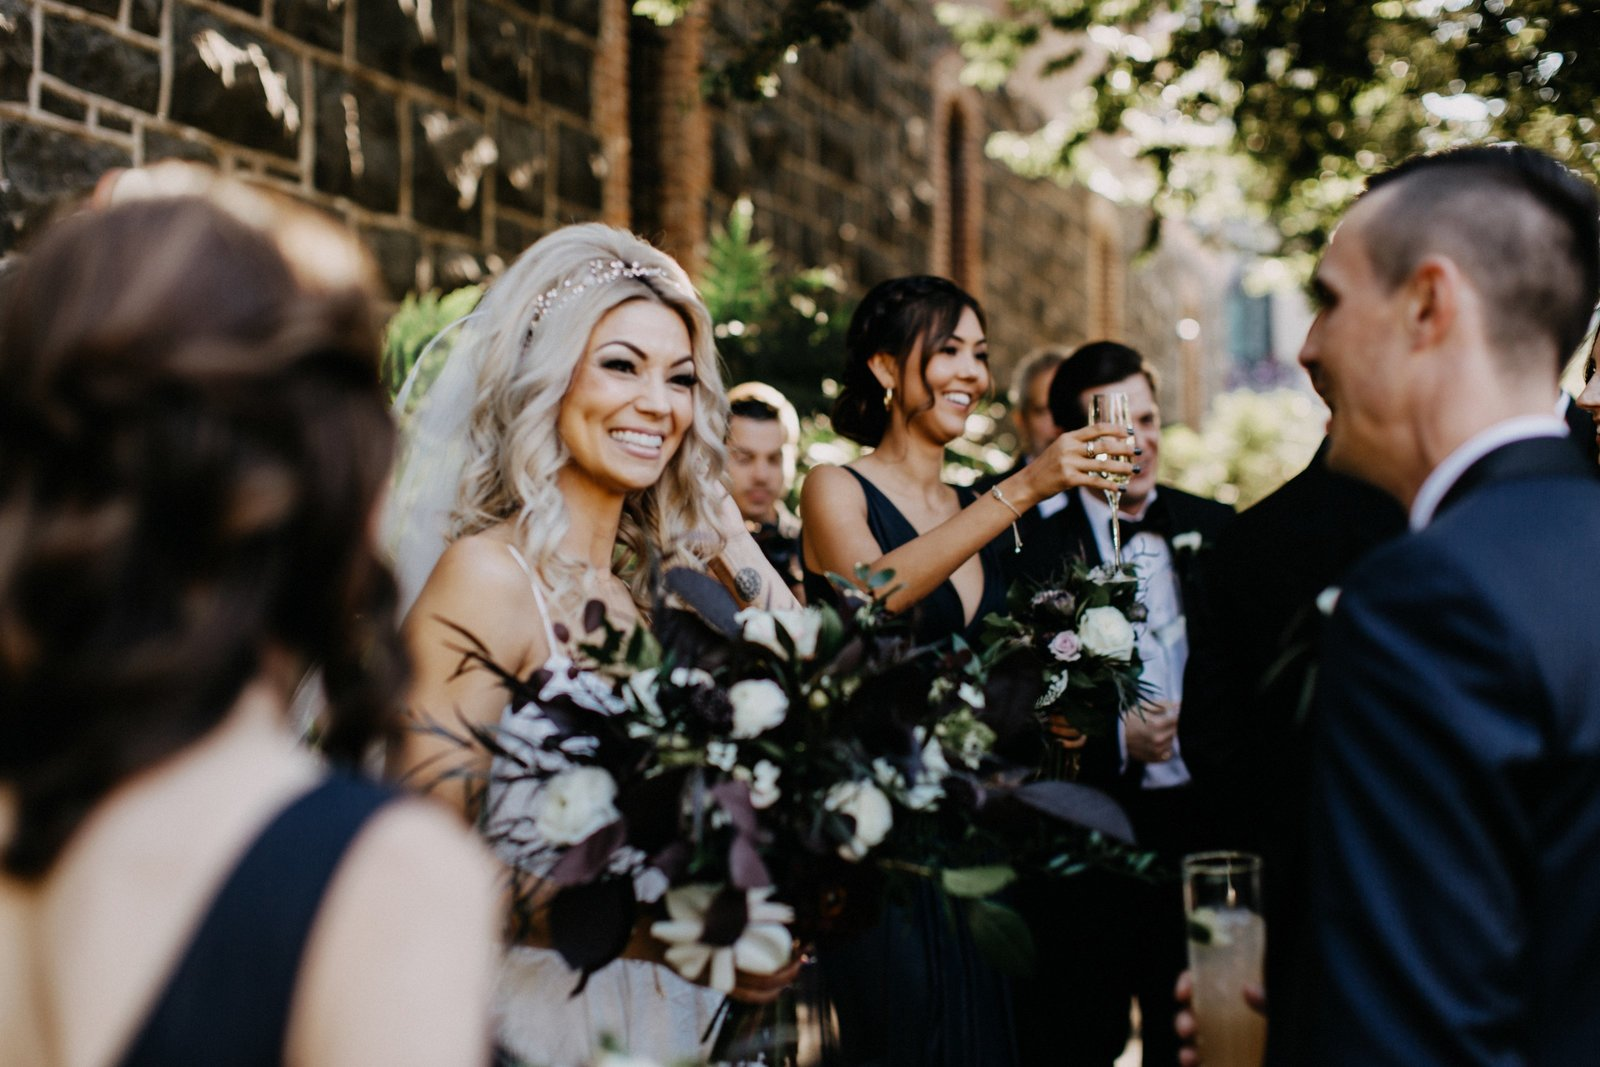 Blonde bride holding bouquet in the city